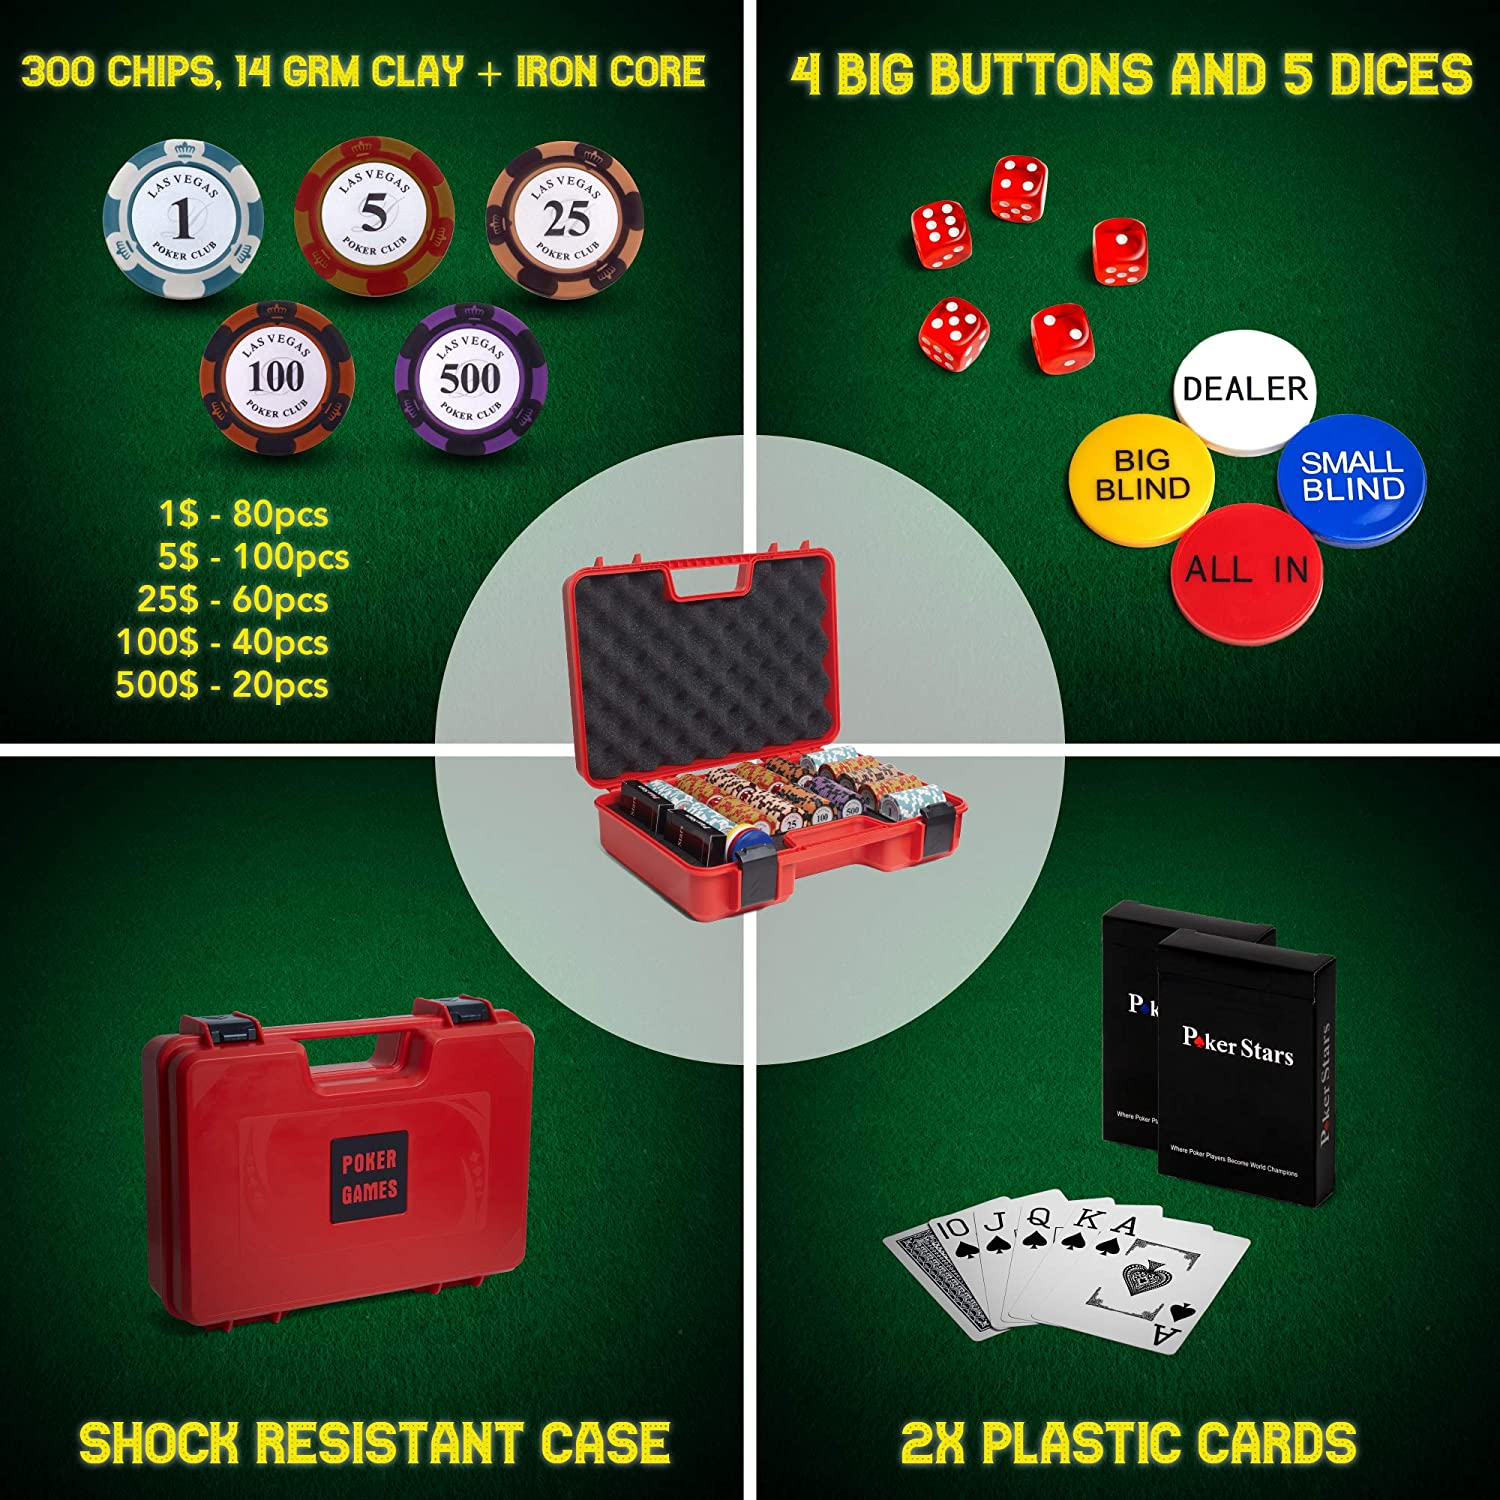 Features a Tasteful Shock Resistant Poker Case Casino Chips Grade Black Jack RUNIC Exclusive Poker Set 300 pcs 14 Gram Clay Poker Chips for Texas Holdem